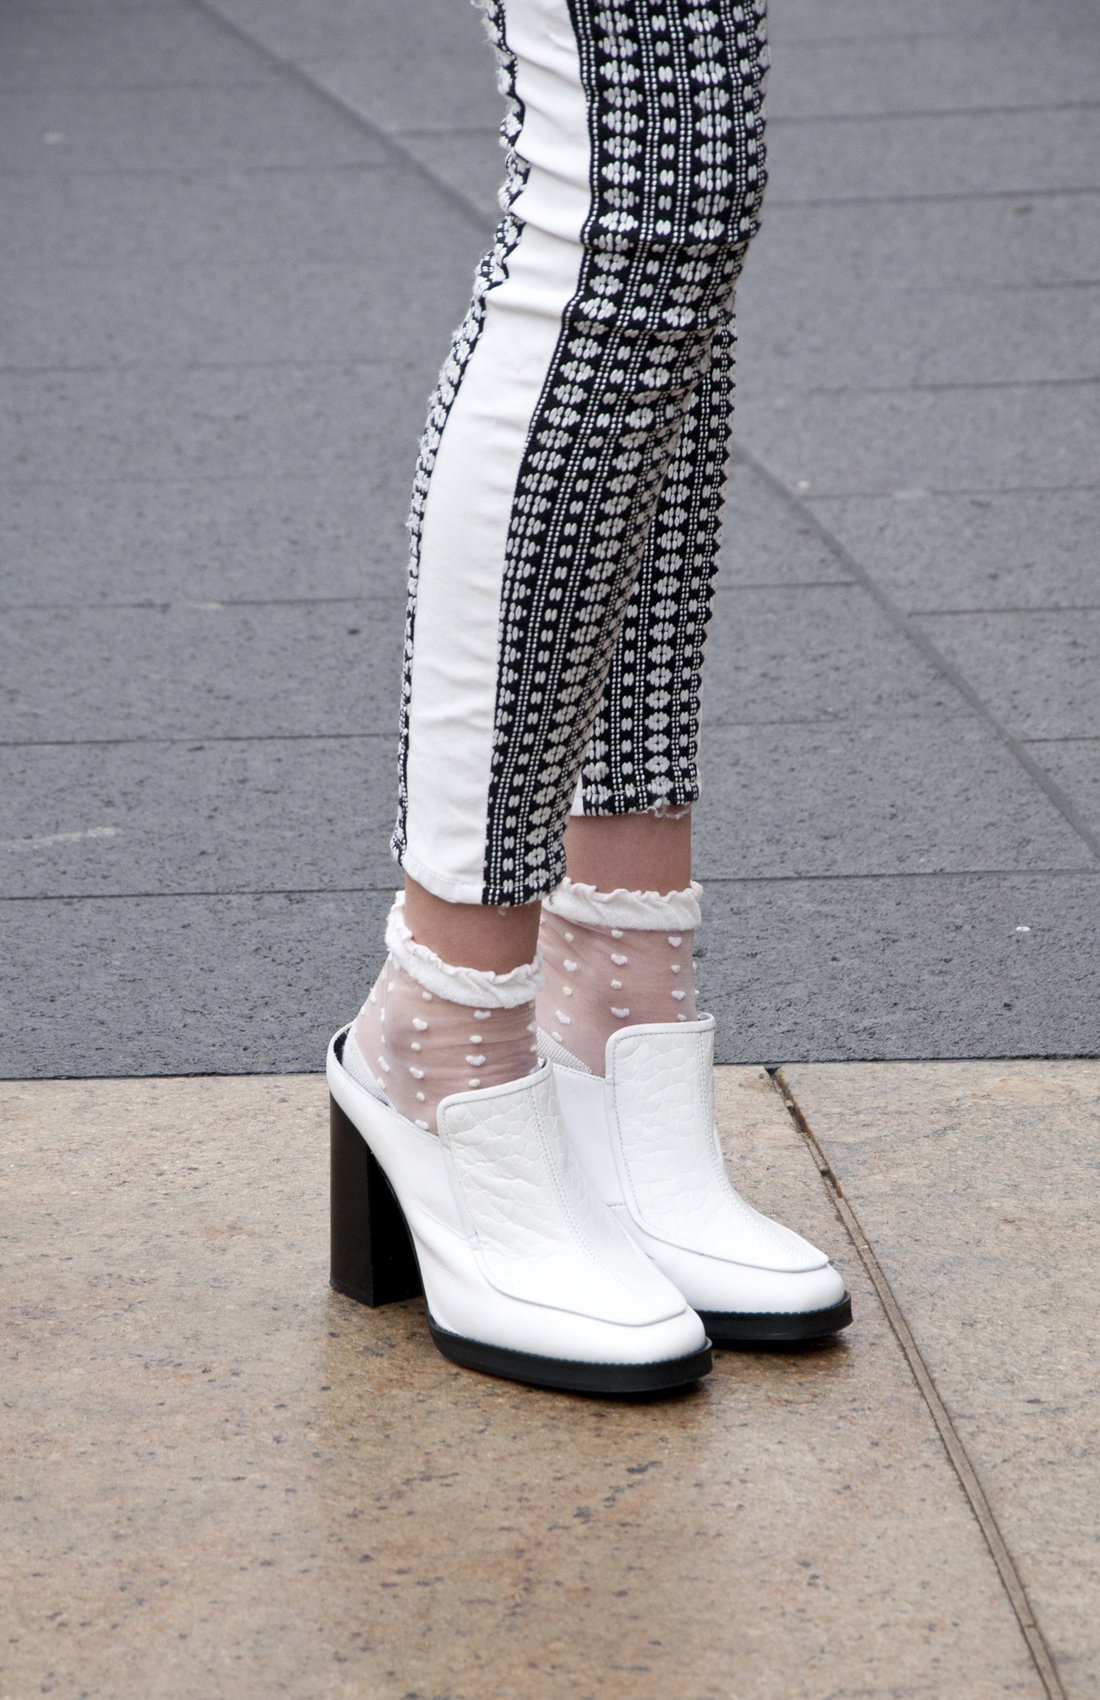 Sammy Riley  wearing shoes by Topshop and jeans by 7 For All Mankind